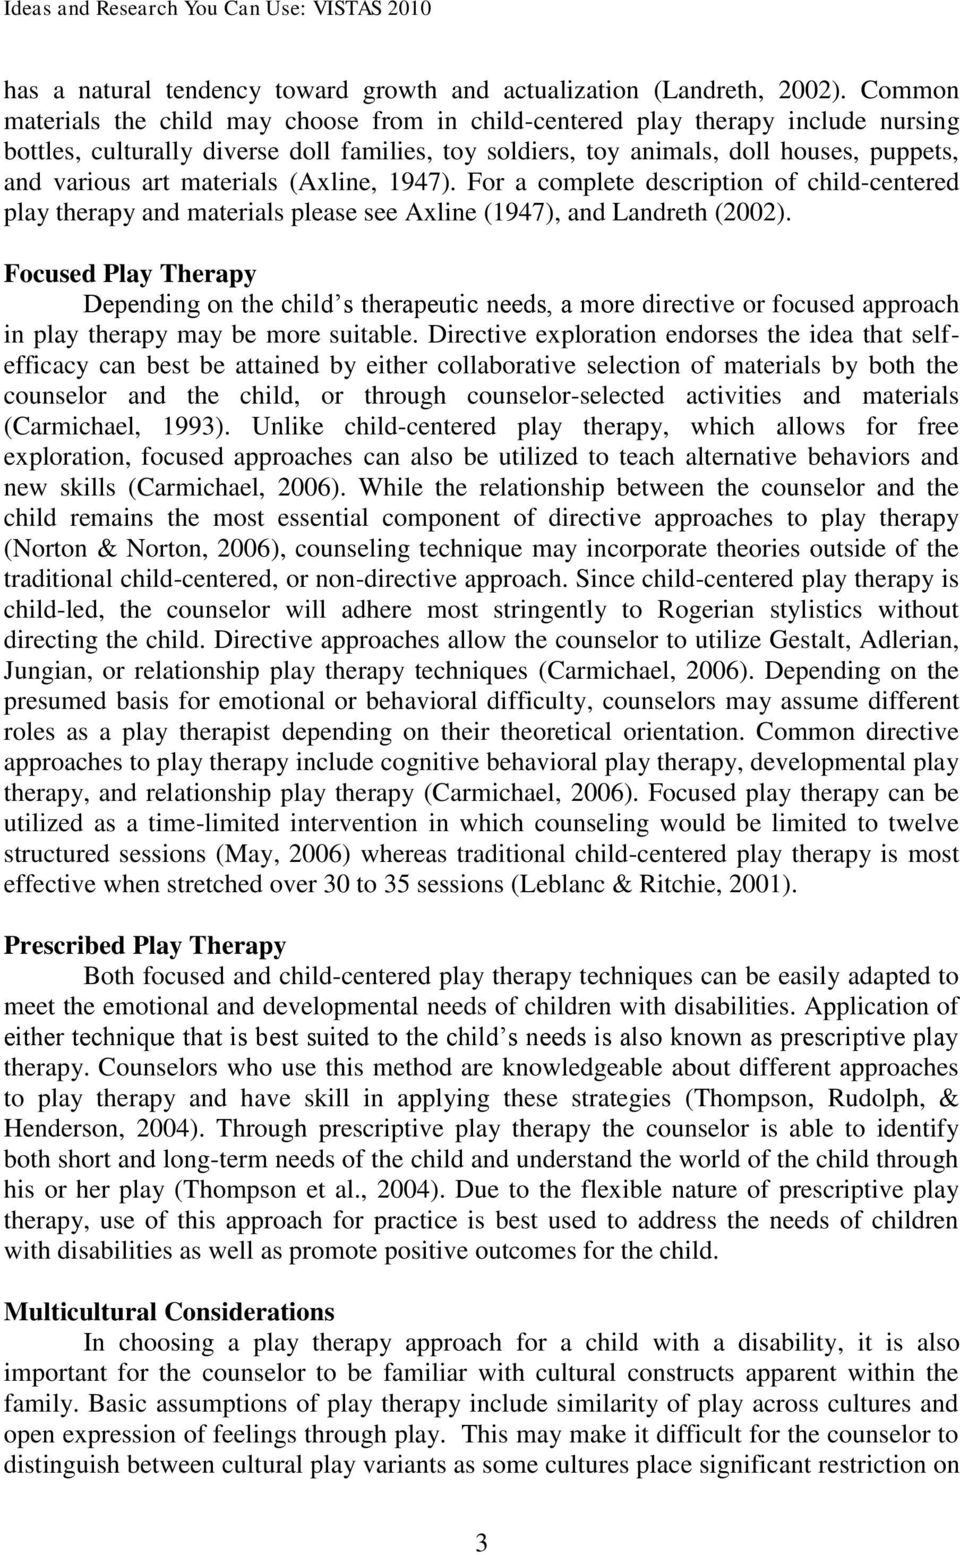 (Axline, 1947). Fr a cmplete descriptin f child-centered play therapy and materials please see Axline (1947), and Landreth (2002).